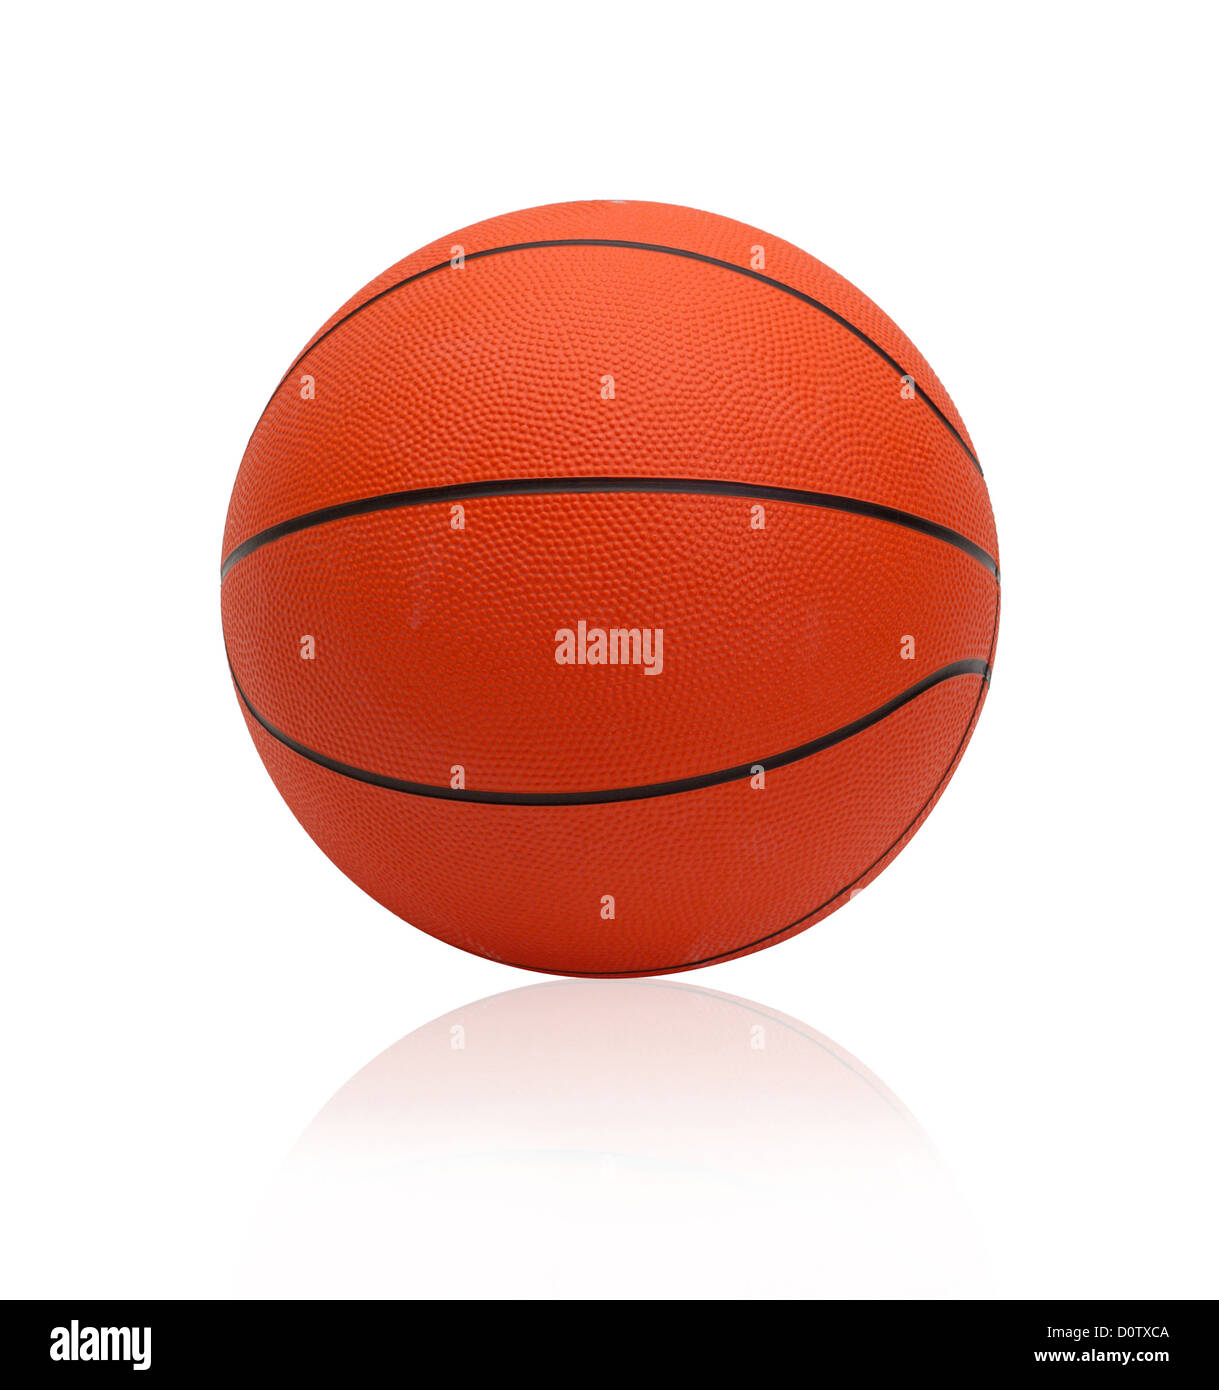 Basketball the world favorite sport games isolated on white - Stock Image